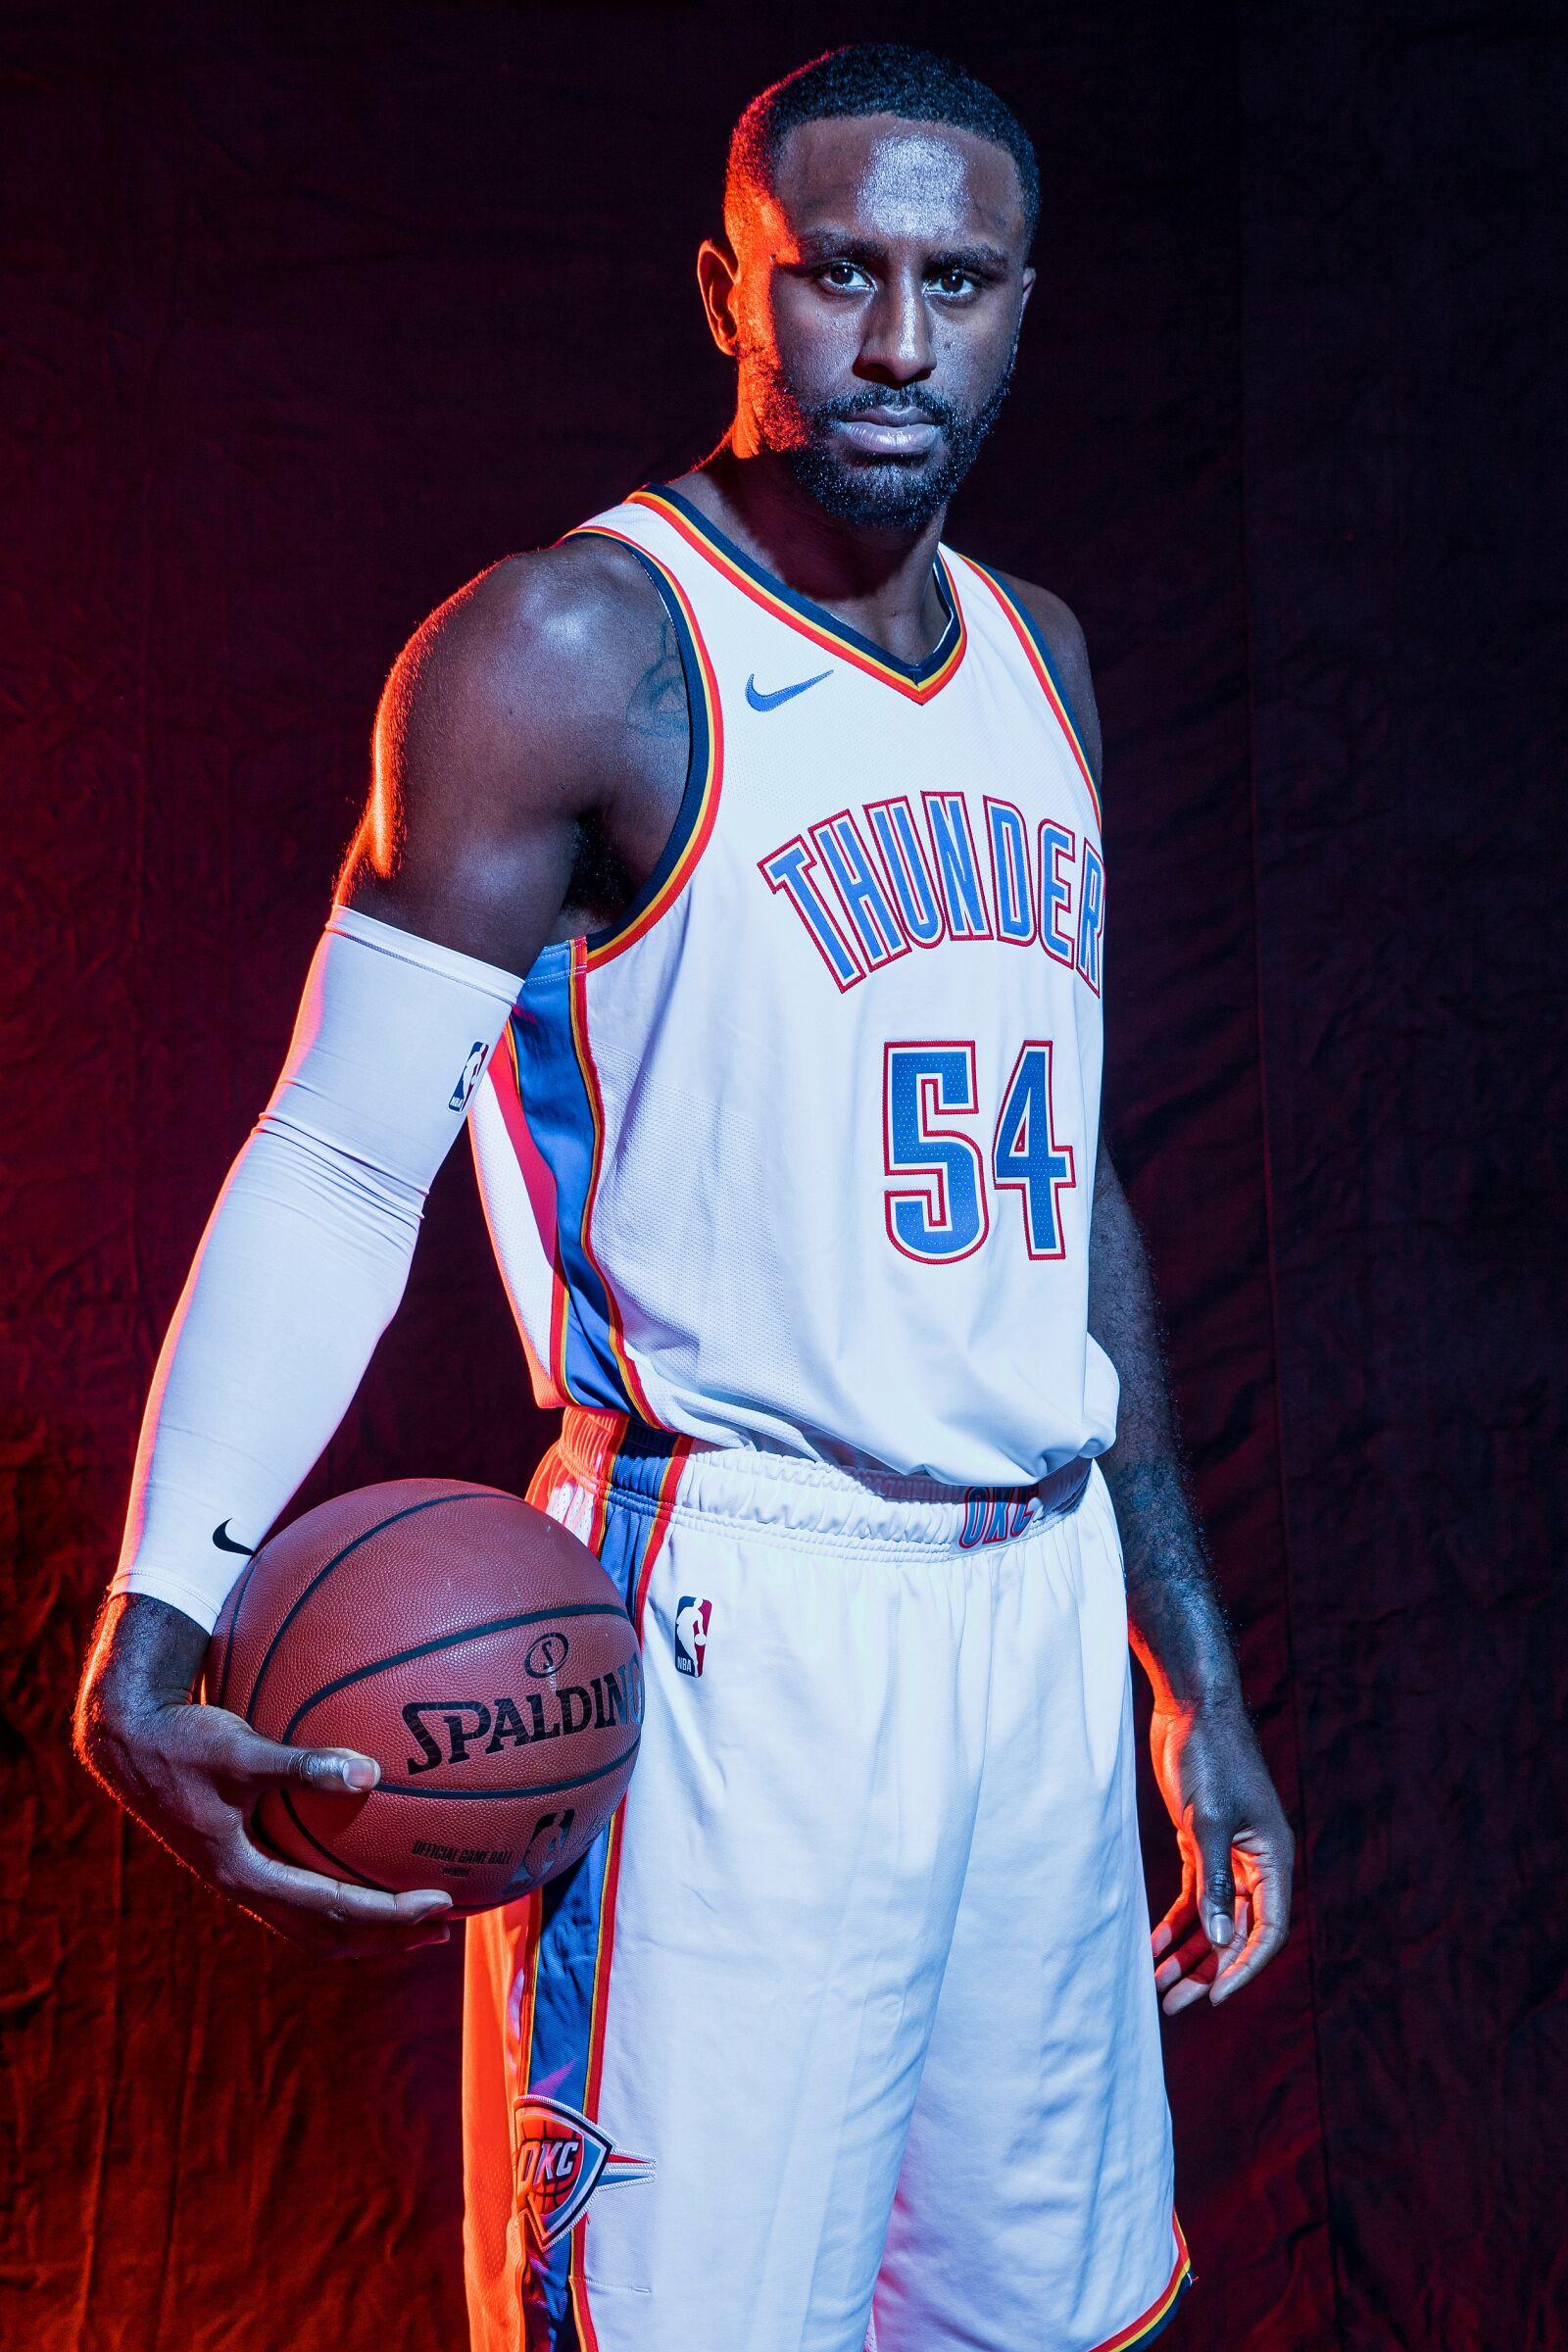 335f6865a4d OKC Thunder in the news: Patterson, Rookies, and Singler